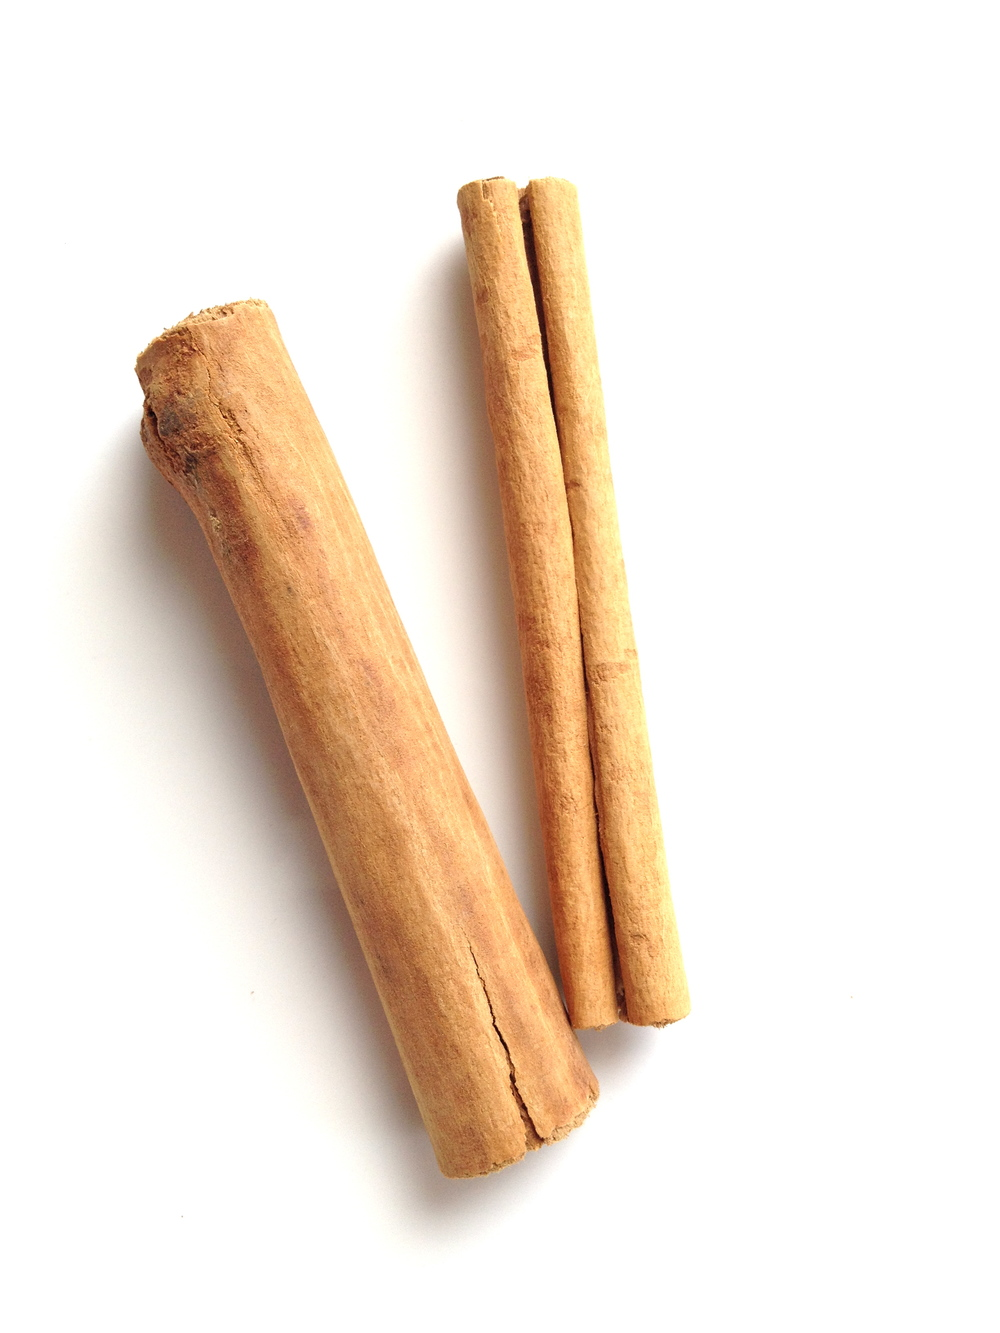 Cinnamon Sticks - Ceylon